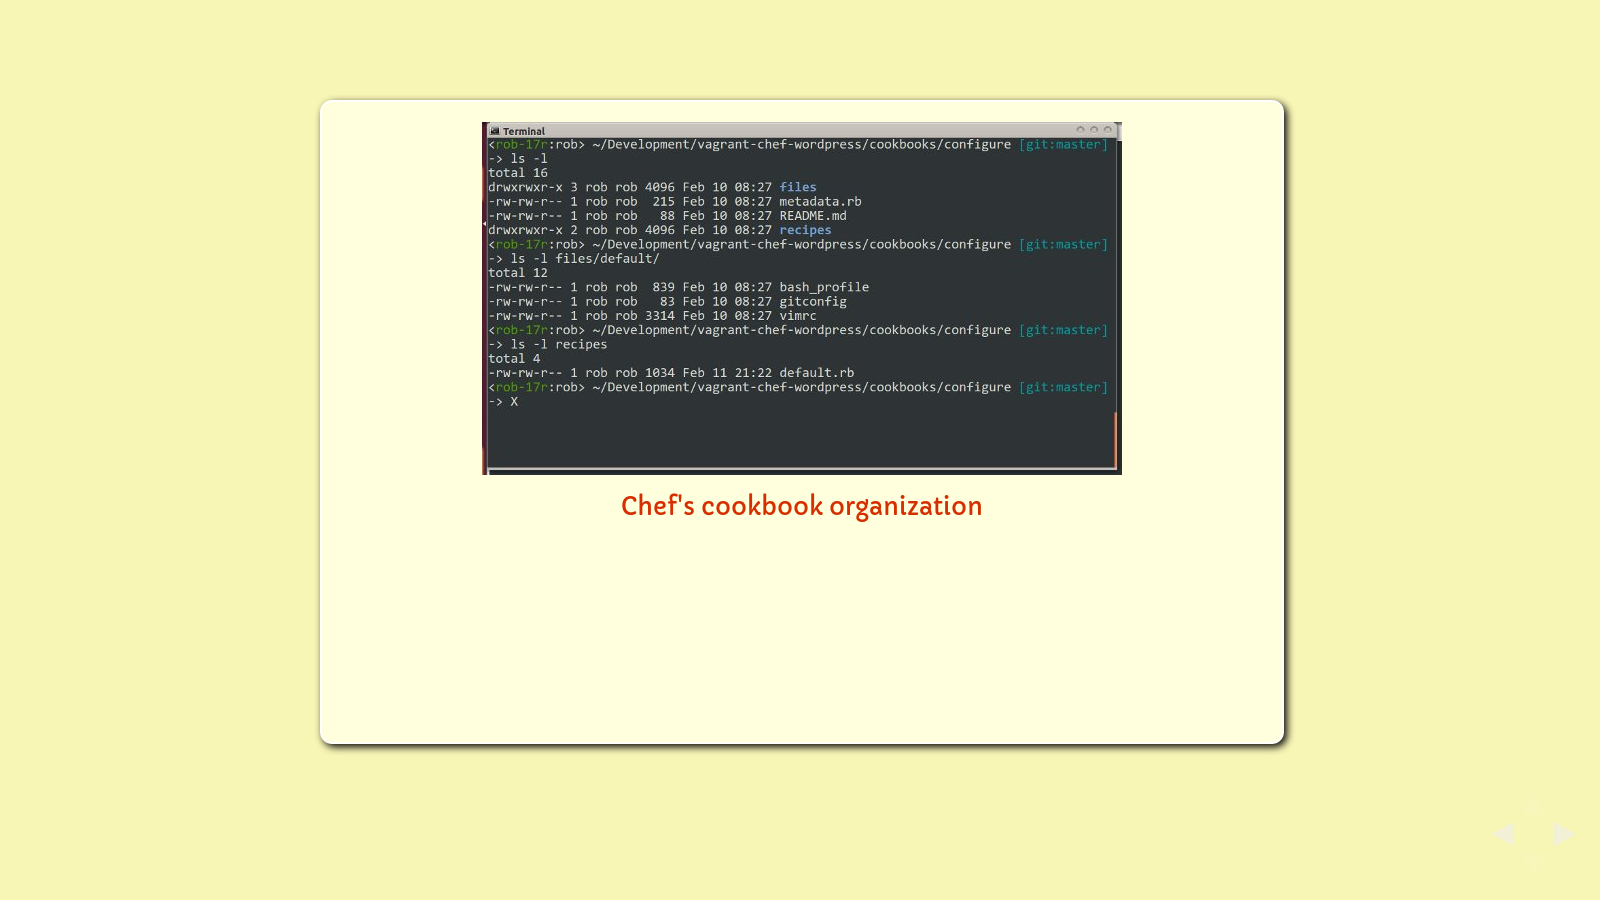 Slide: Chef cookbook structure from vagrant-chef-wordpress